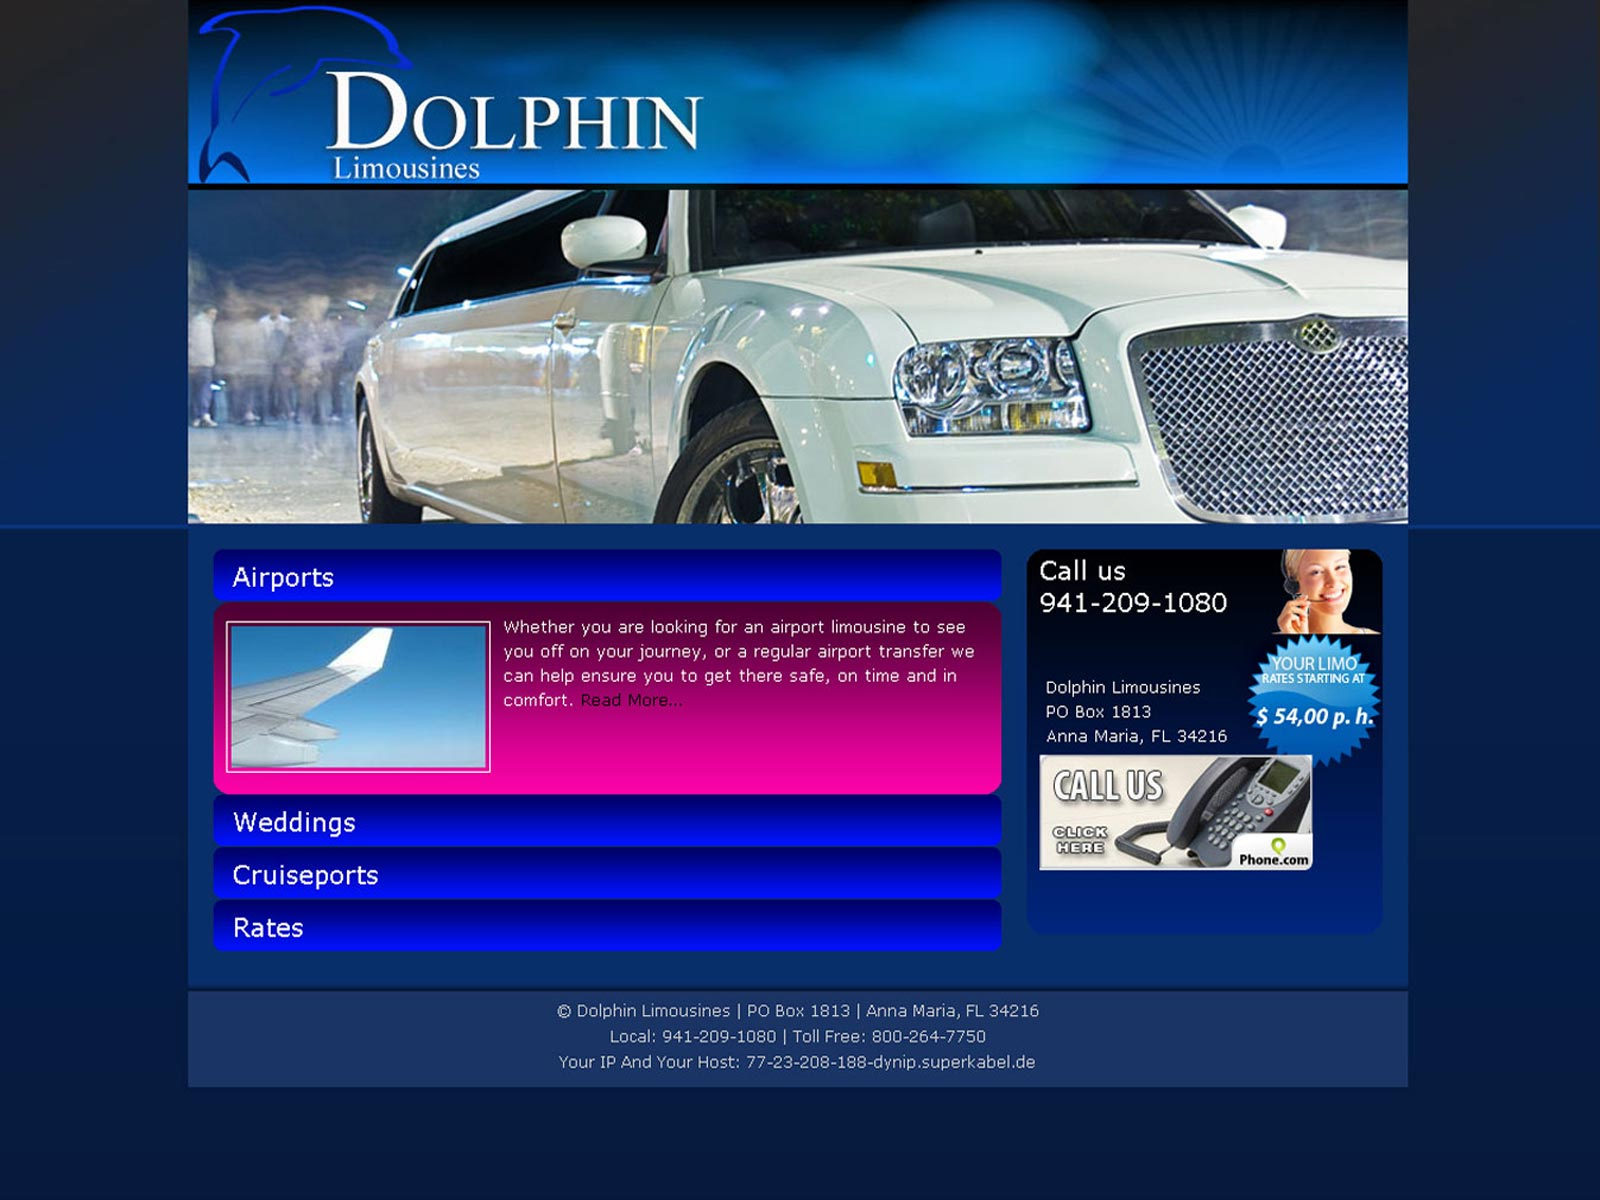 Dolphin Limousines